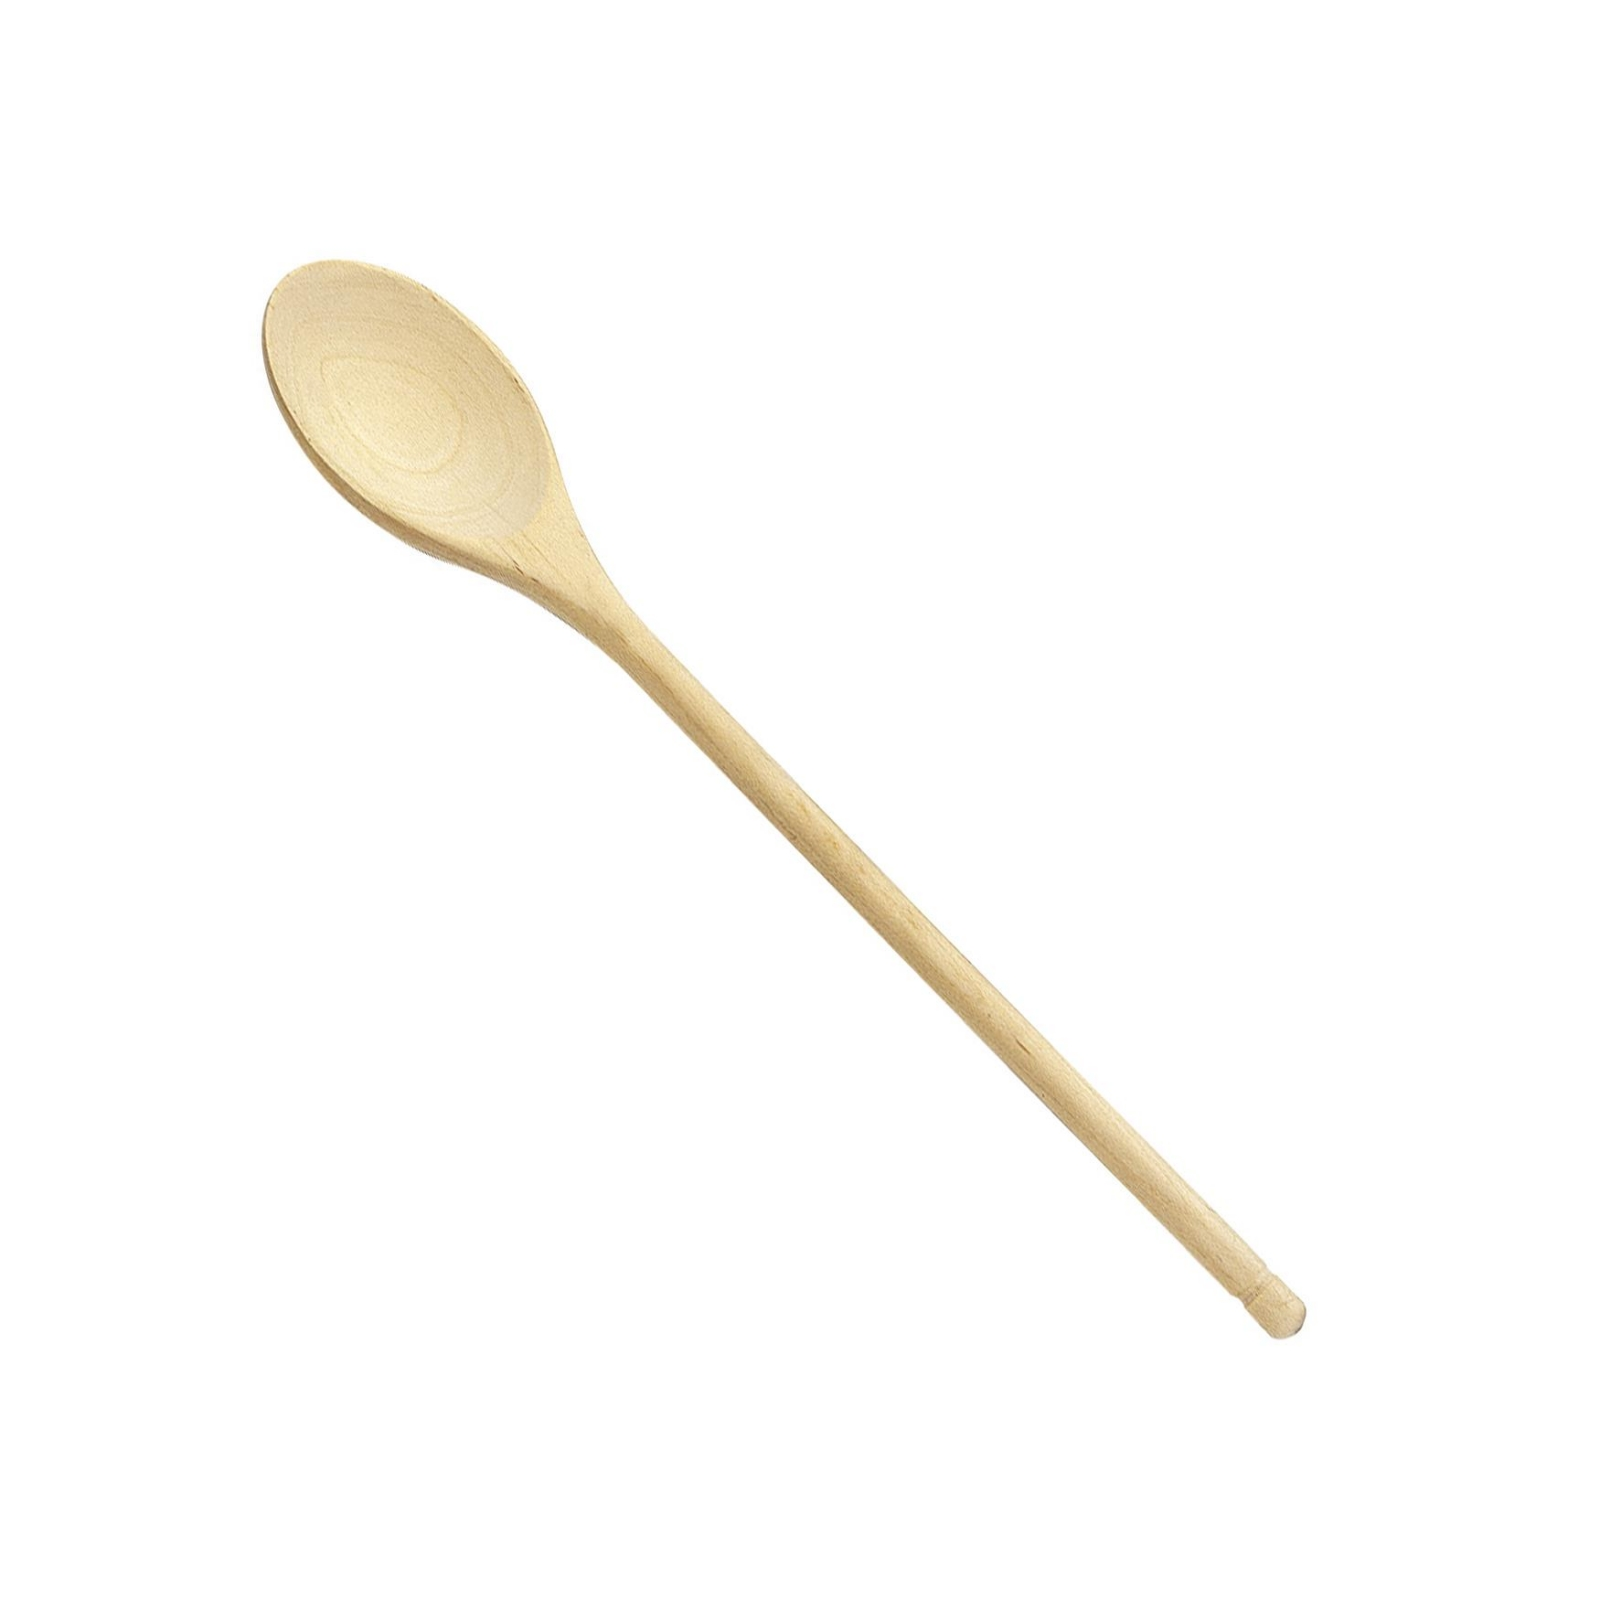 Cuchara oval woody 30 cm madera tescoma carrefour for Carrefour utensilios cocina